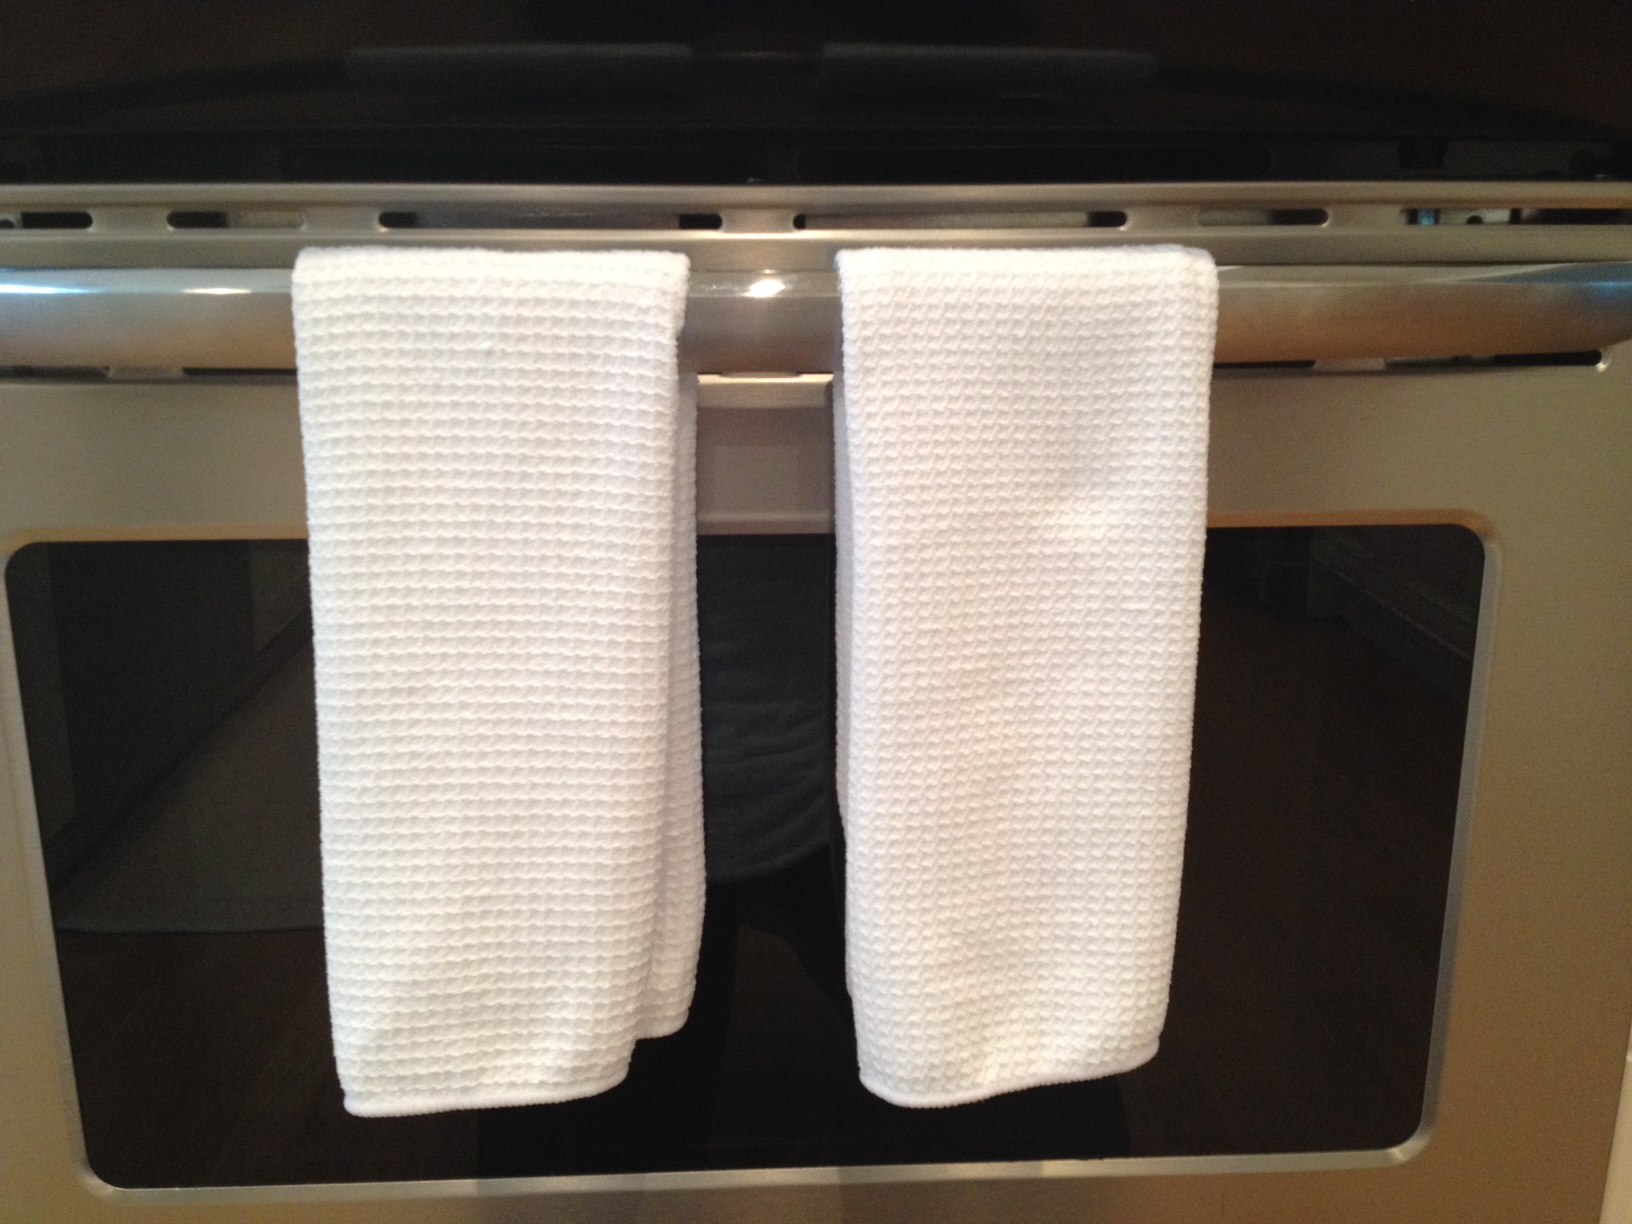 Microfiber kitchen towels photo - 2